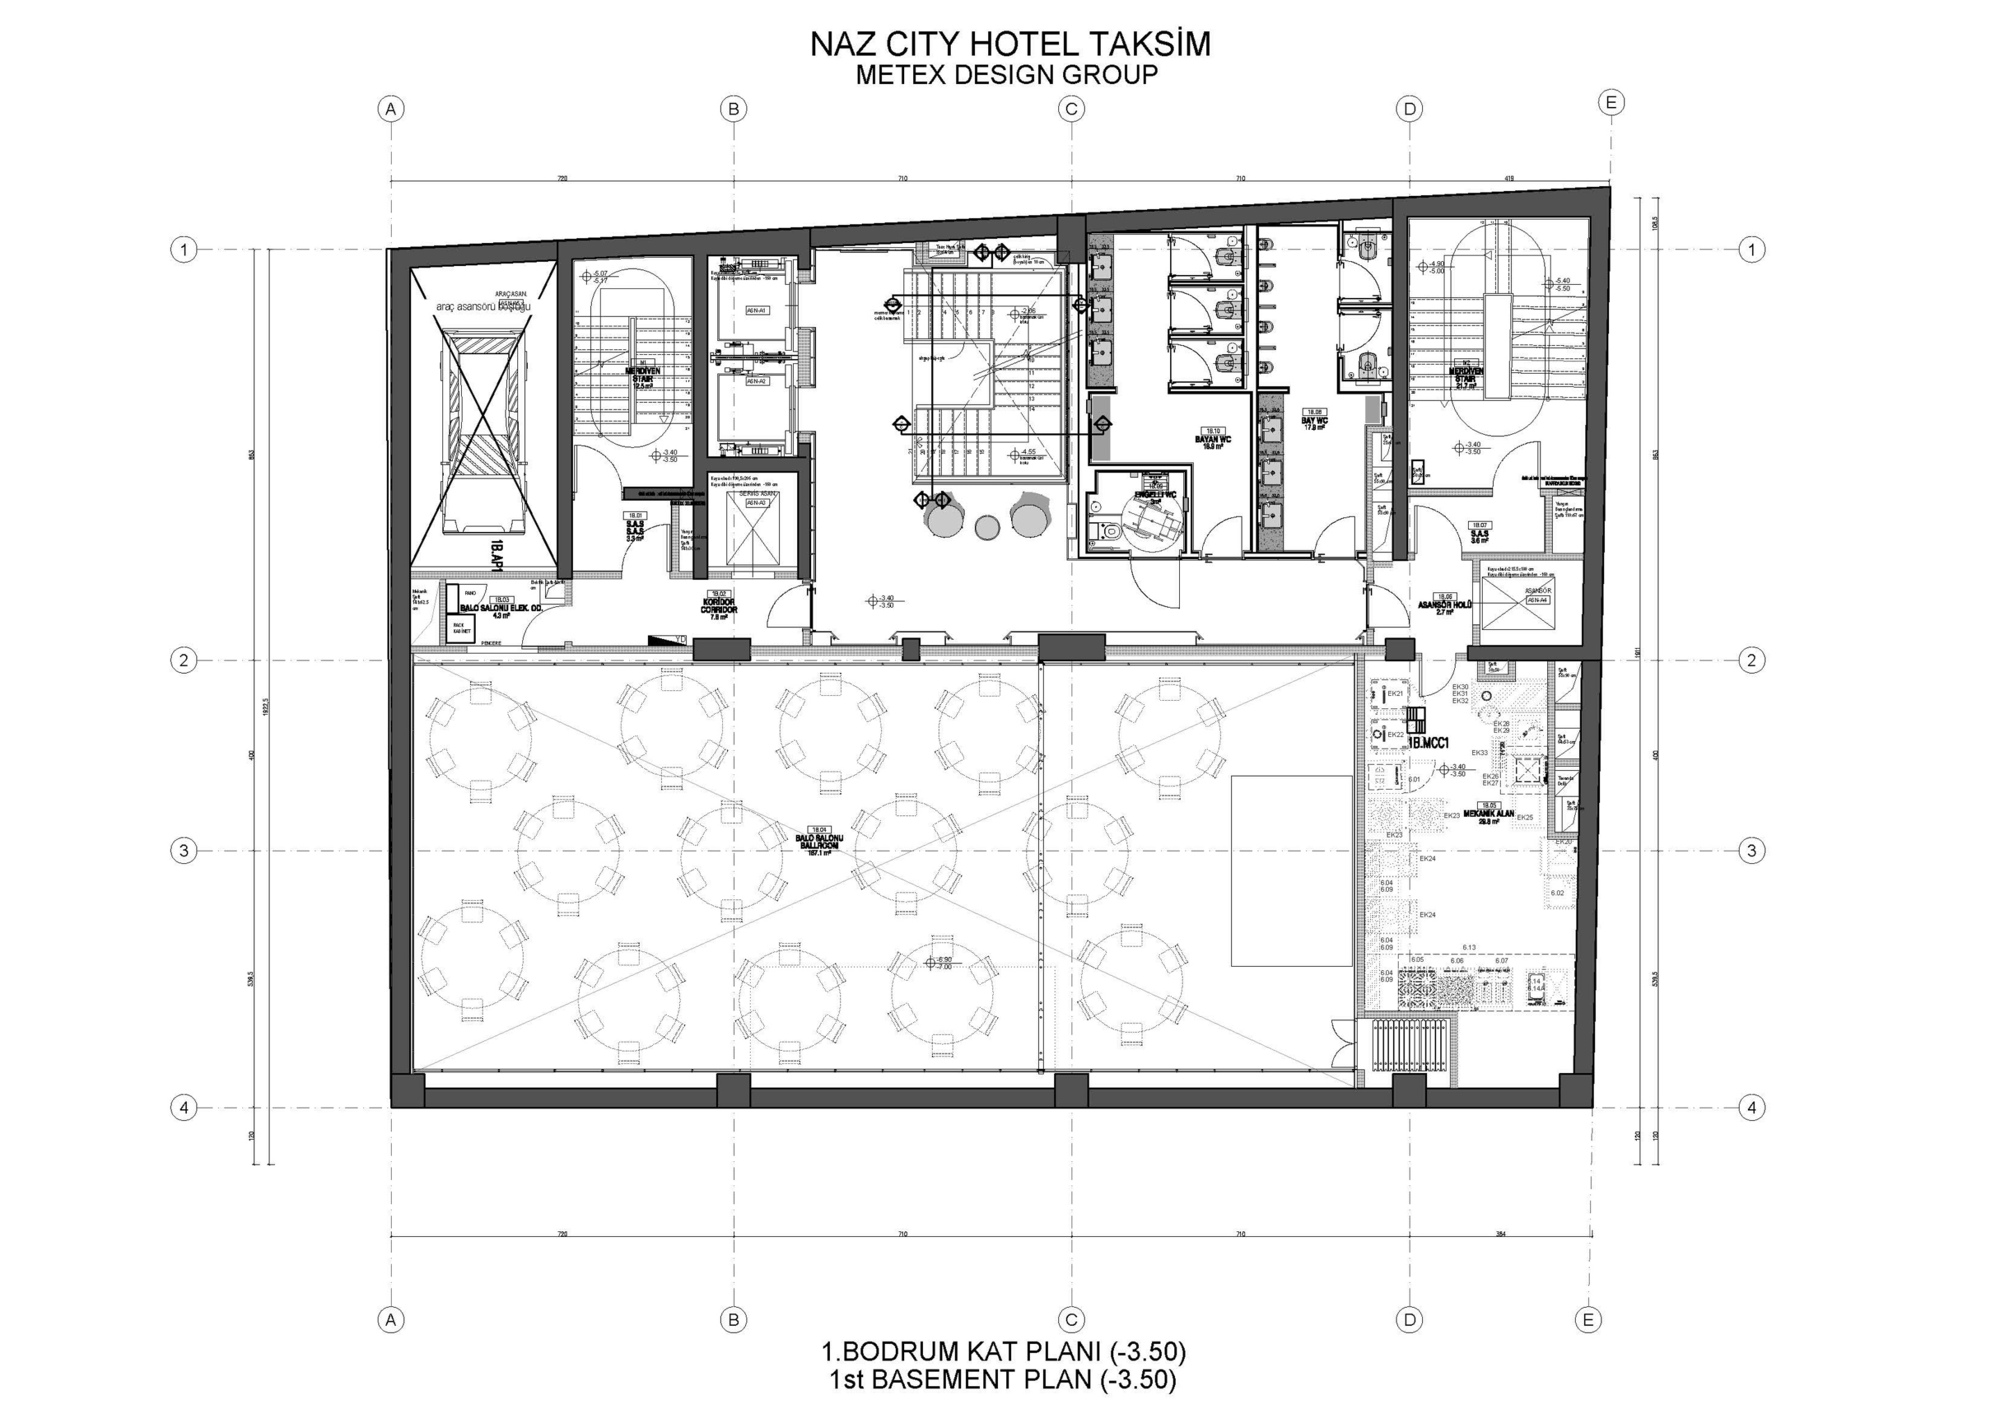 architecture floor plans gallery of naz city hotel taksim metex design 35 10172